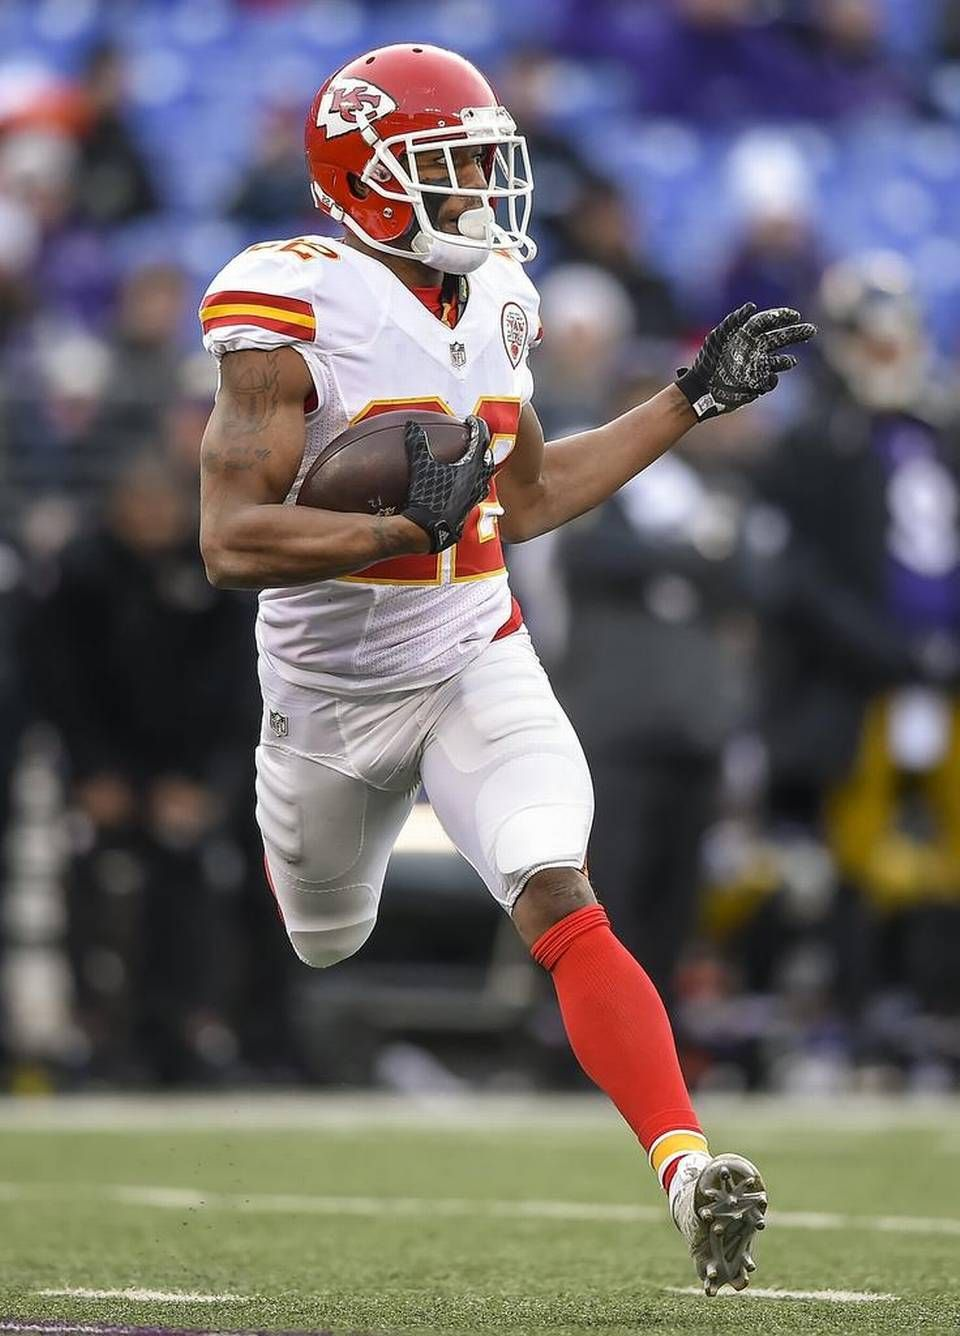 Kansas City Chiefs cornerback Marcus Peters 22 intercepted his